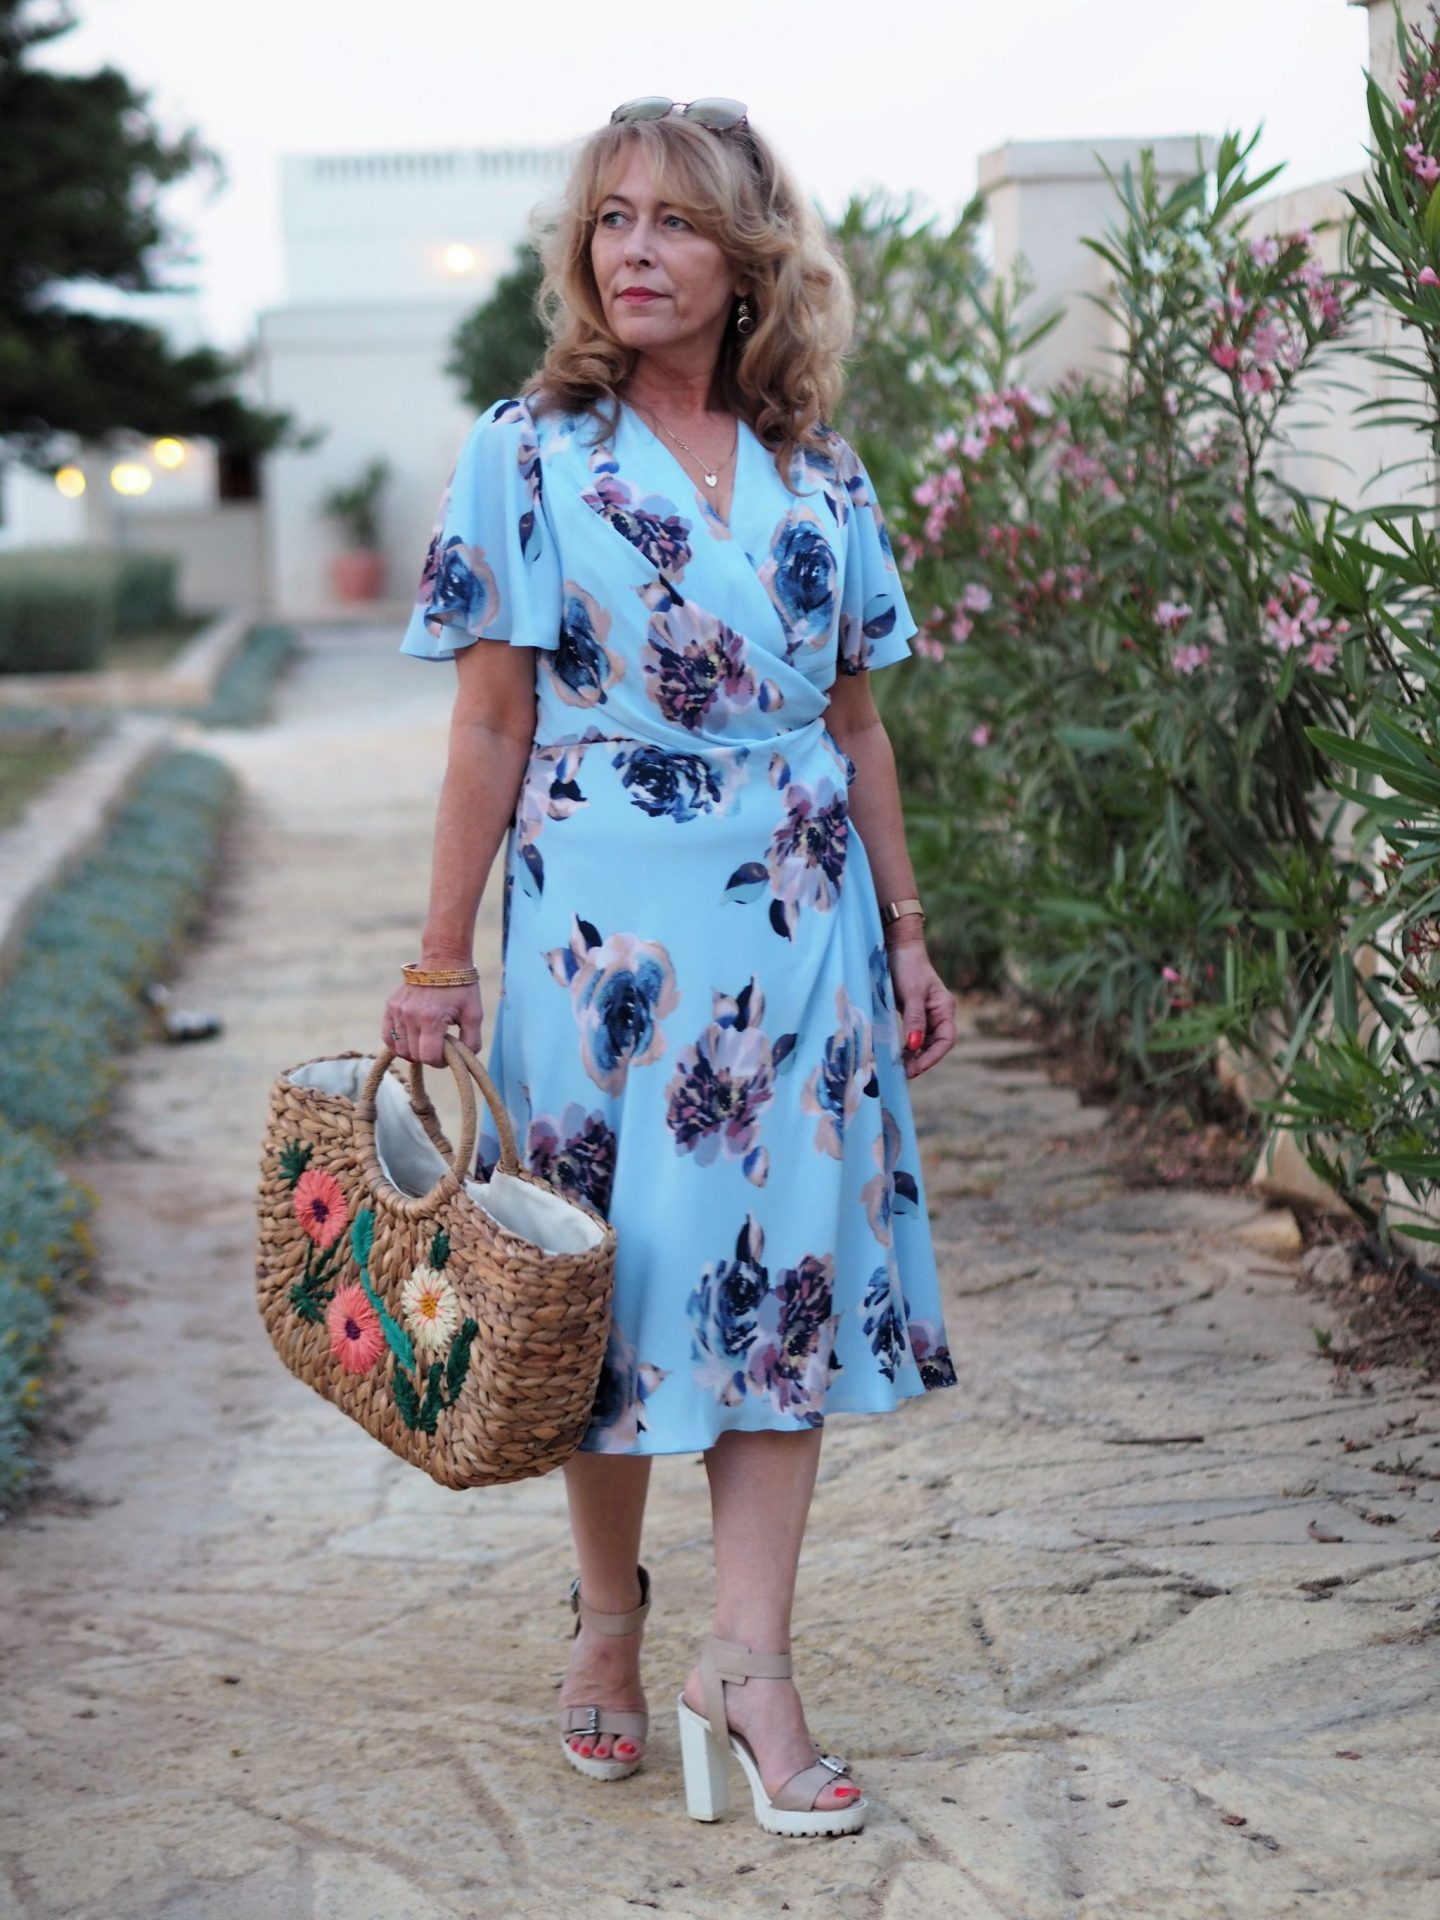 Malta holiday fashion edit #2